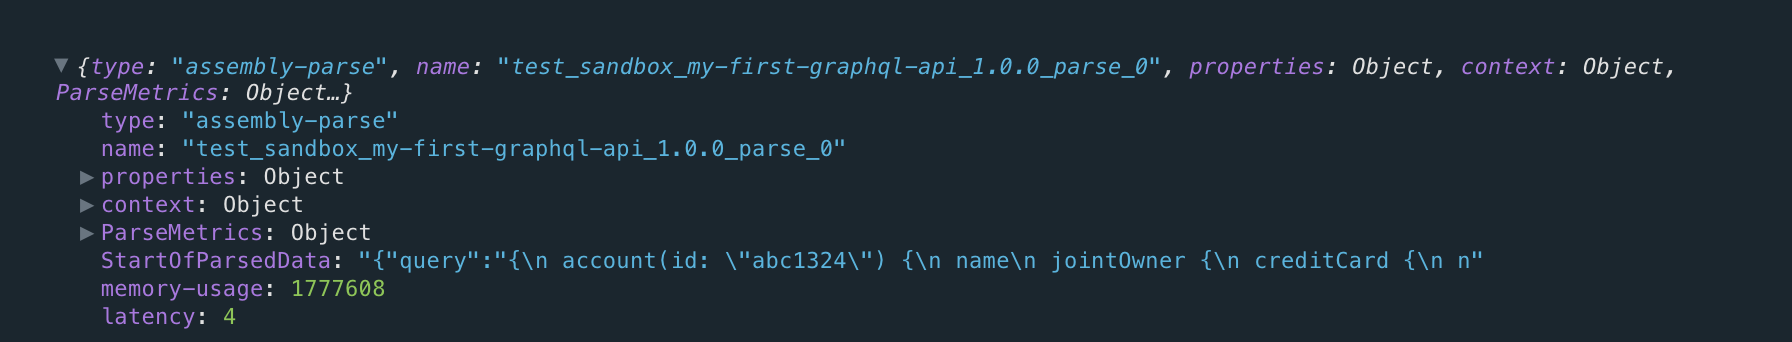 Parse Policy Details with 4ms latency time